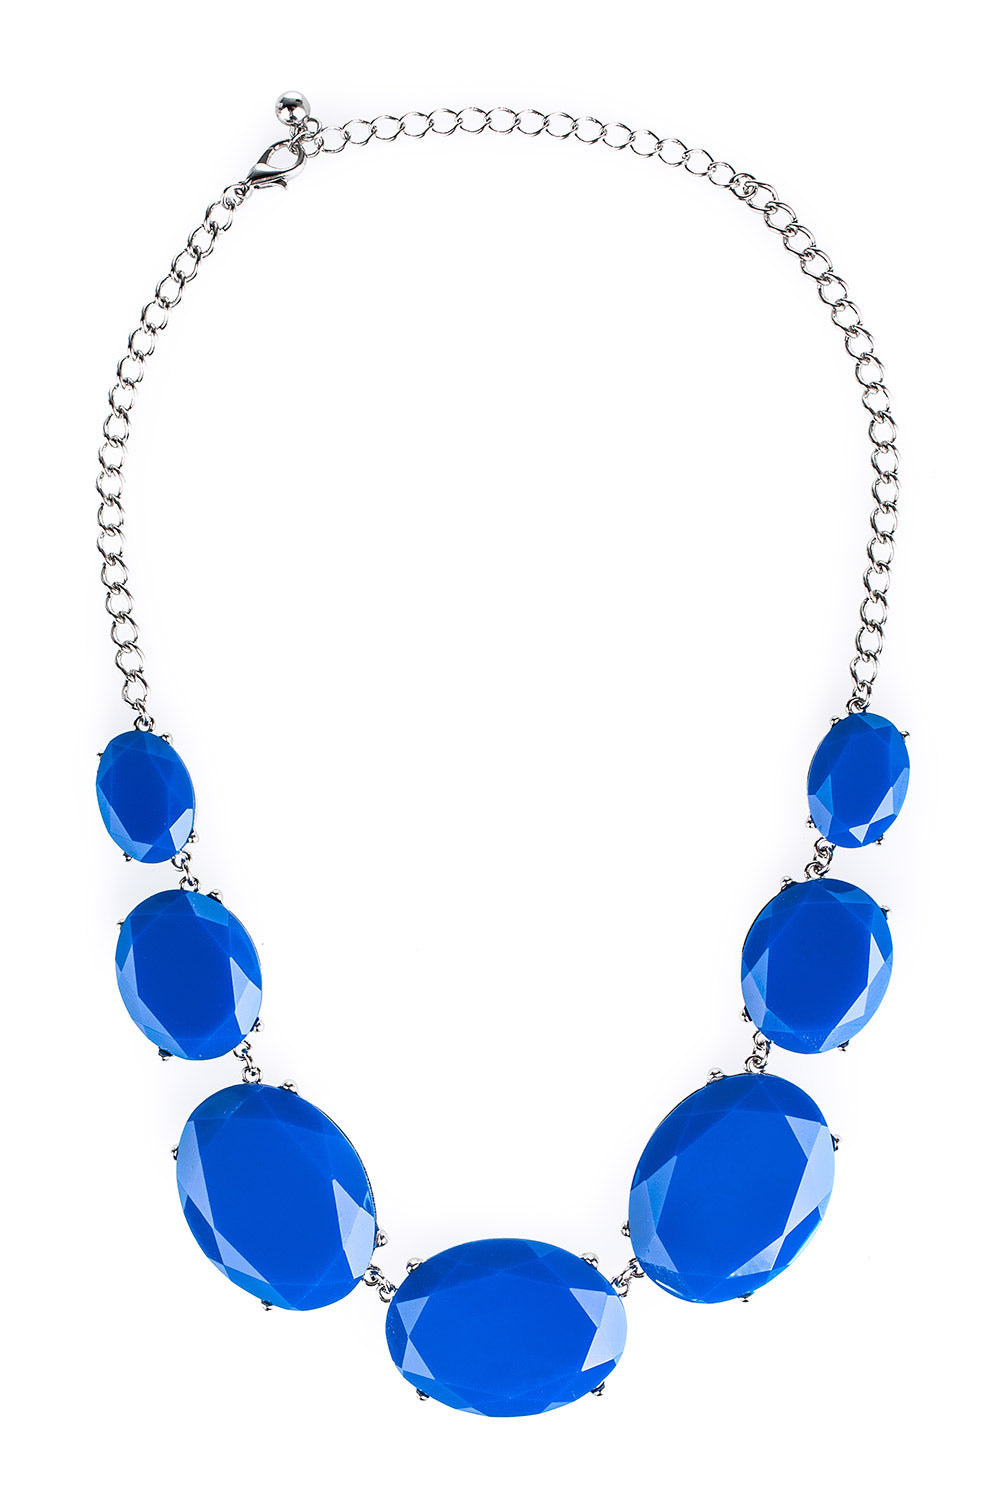 Type 4 Blue Pools Necklace